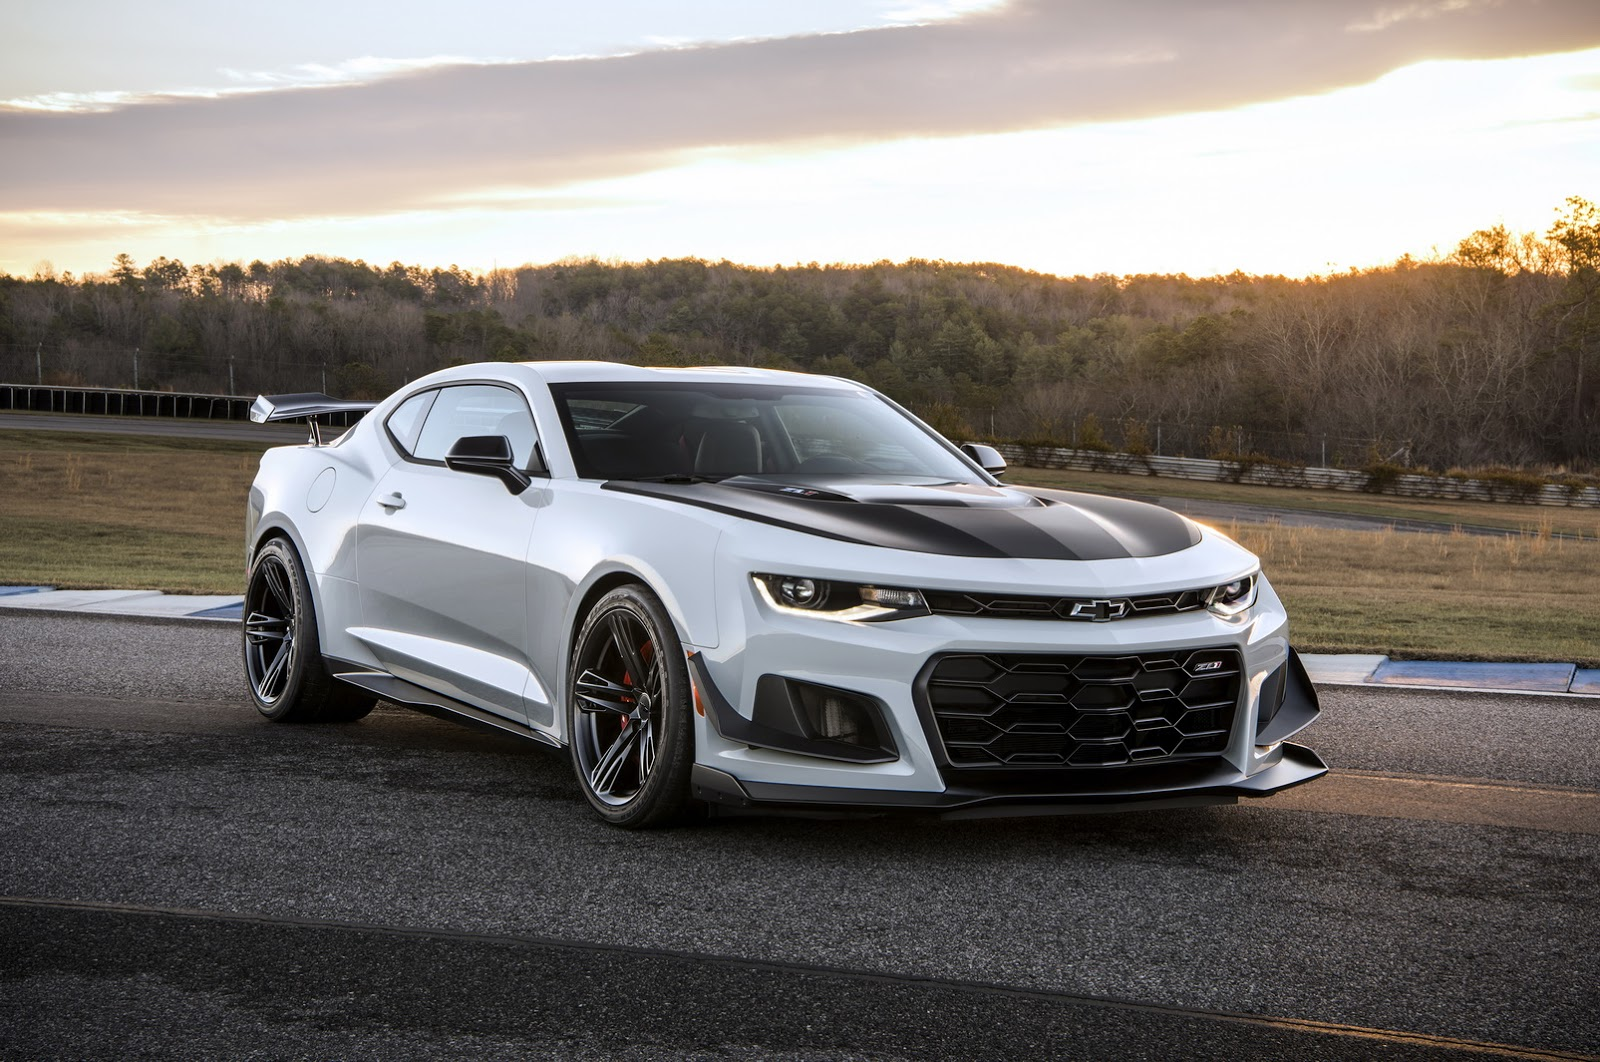 chevrolet camaro snatches sales crown from mustang carscoops. Black Bedroom Furniture Sets. Home Design Ideas